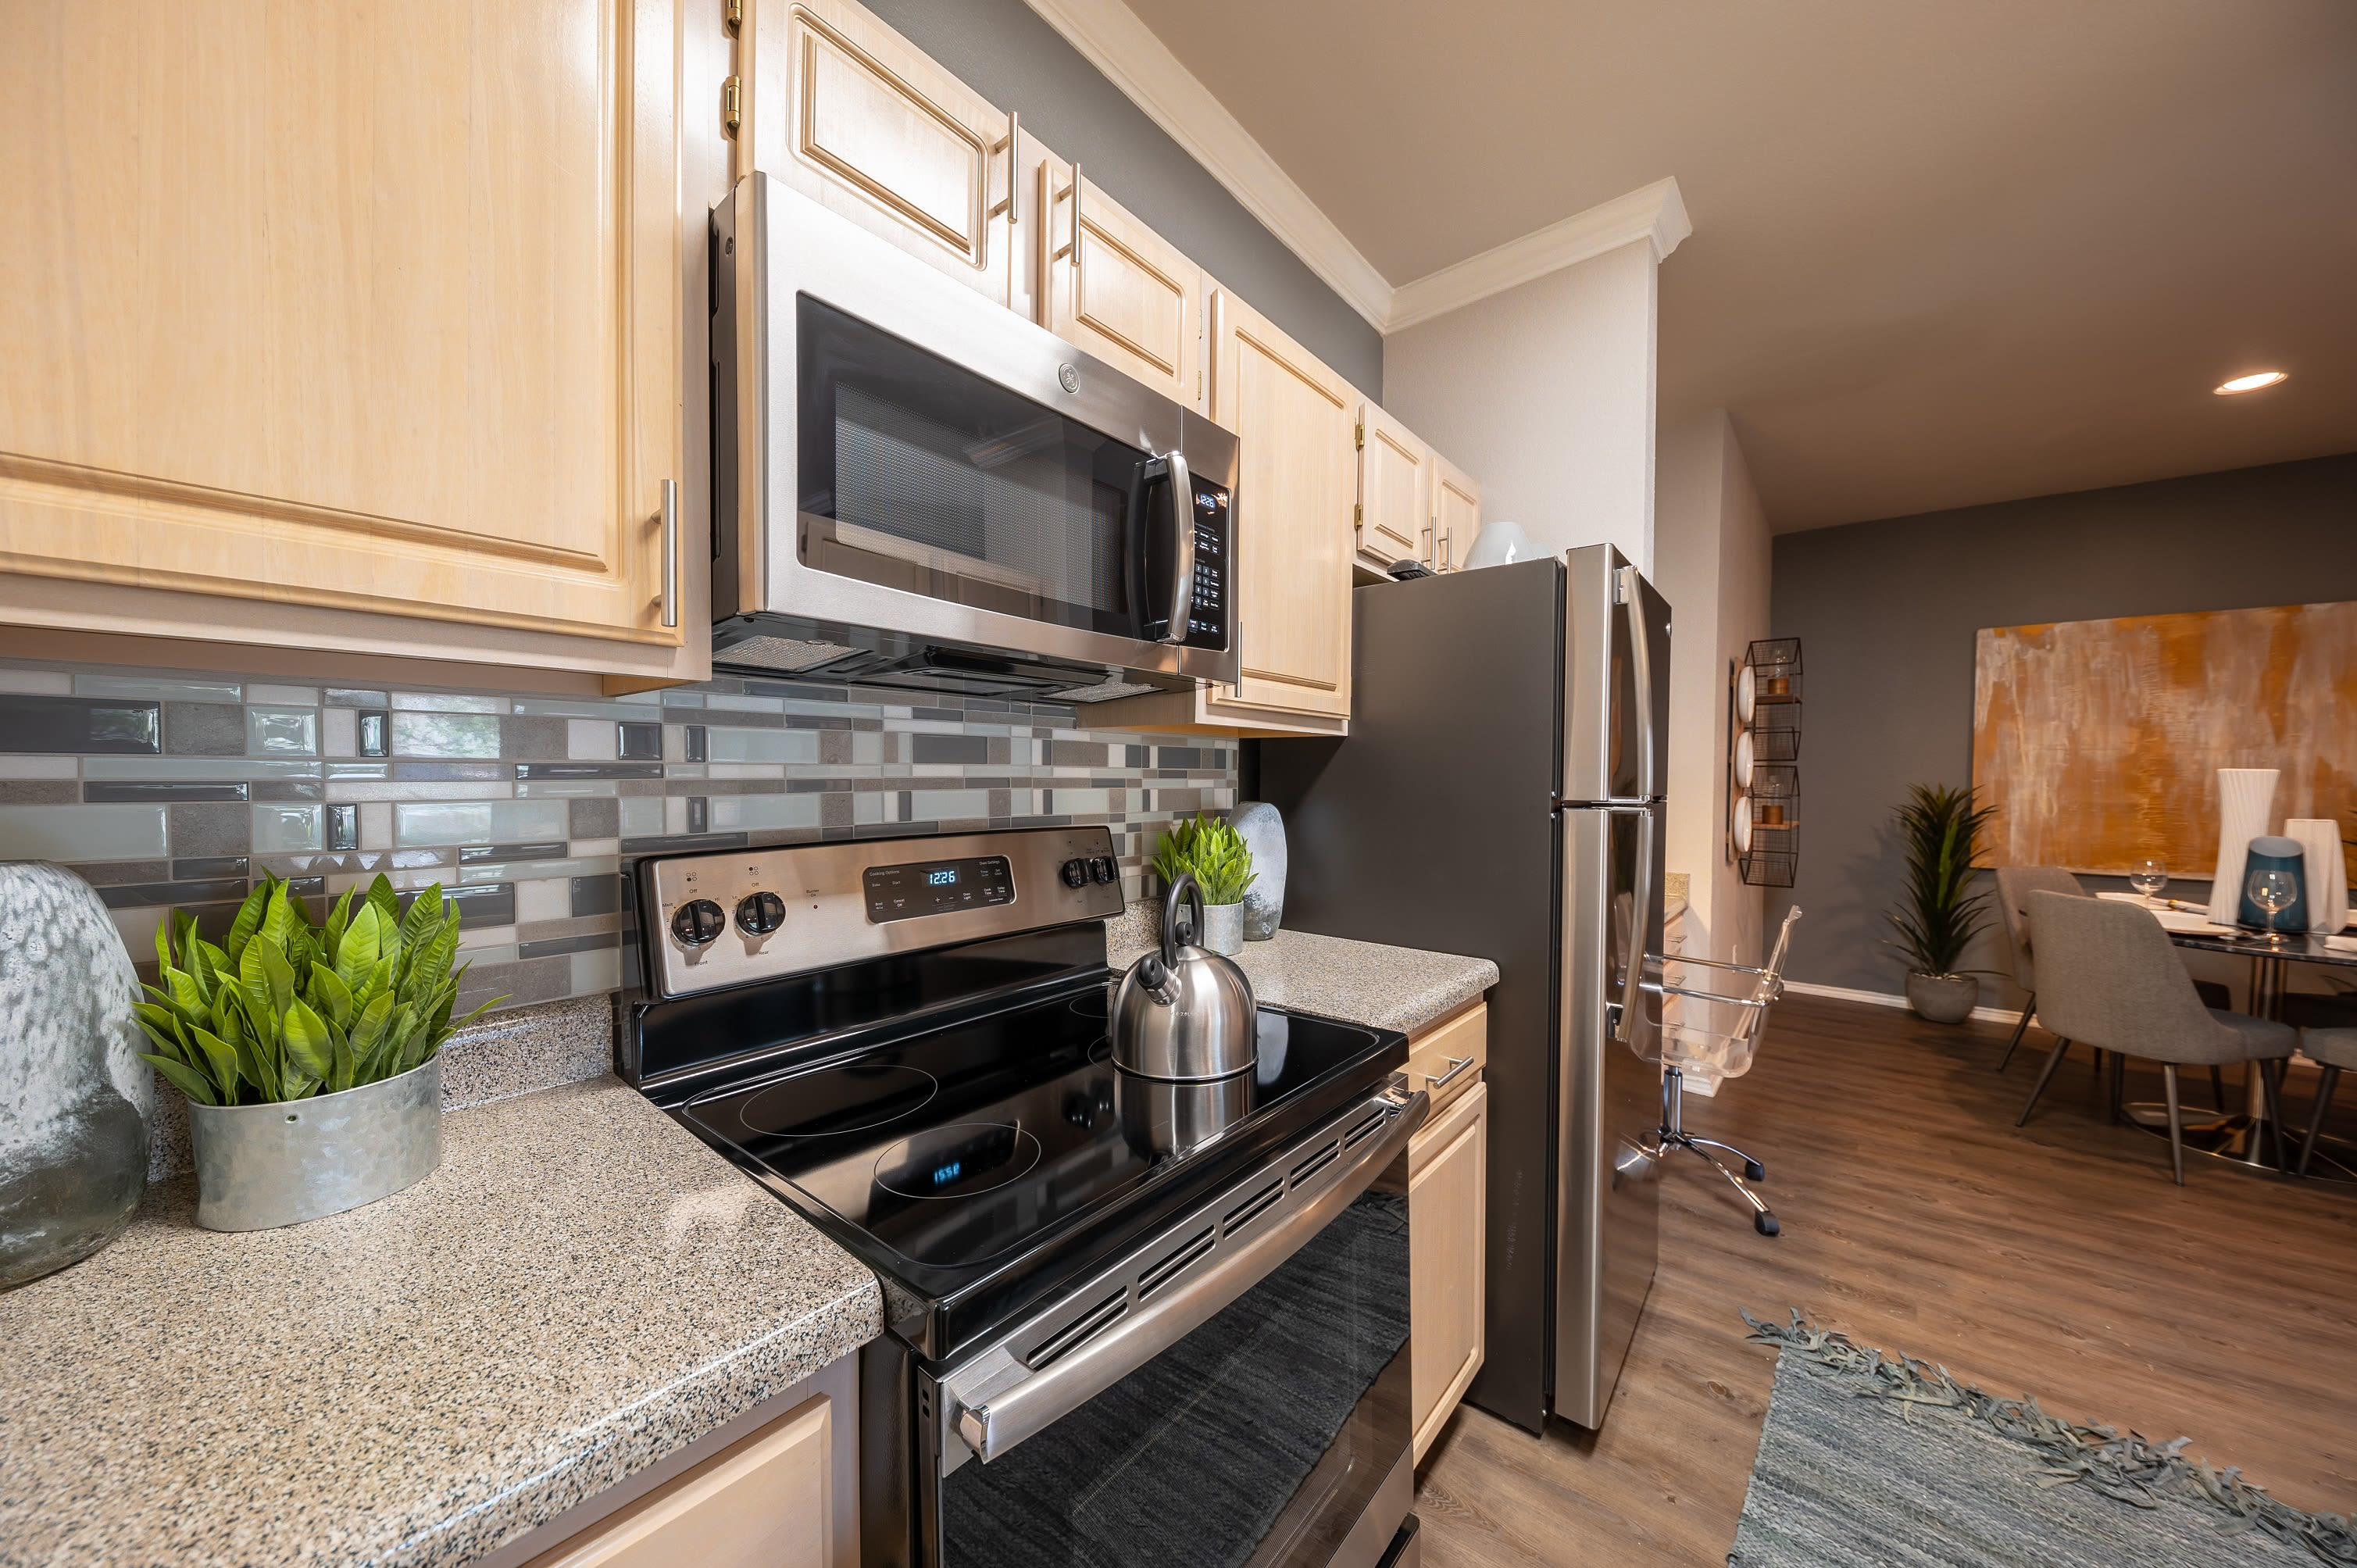 Affordable 1 2 3 bedroom apartments in plano tx - Cheap 2 bedroom apartments in lubbock tx ...